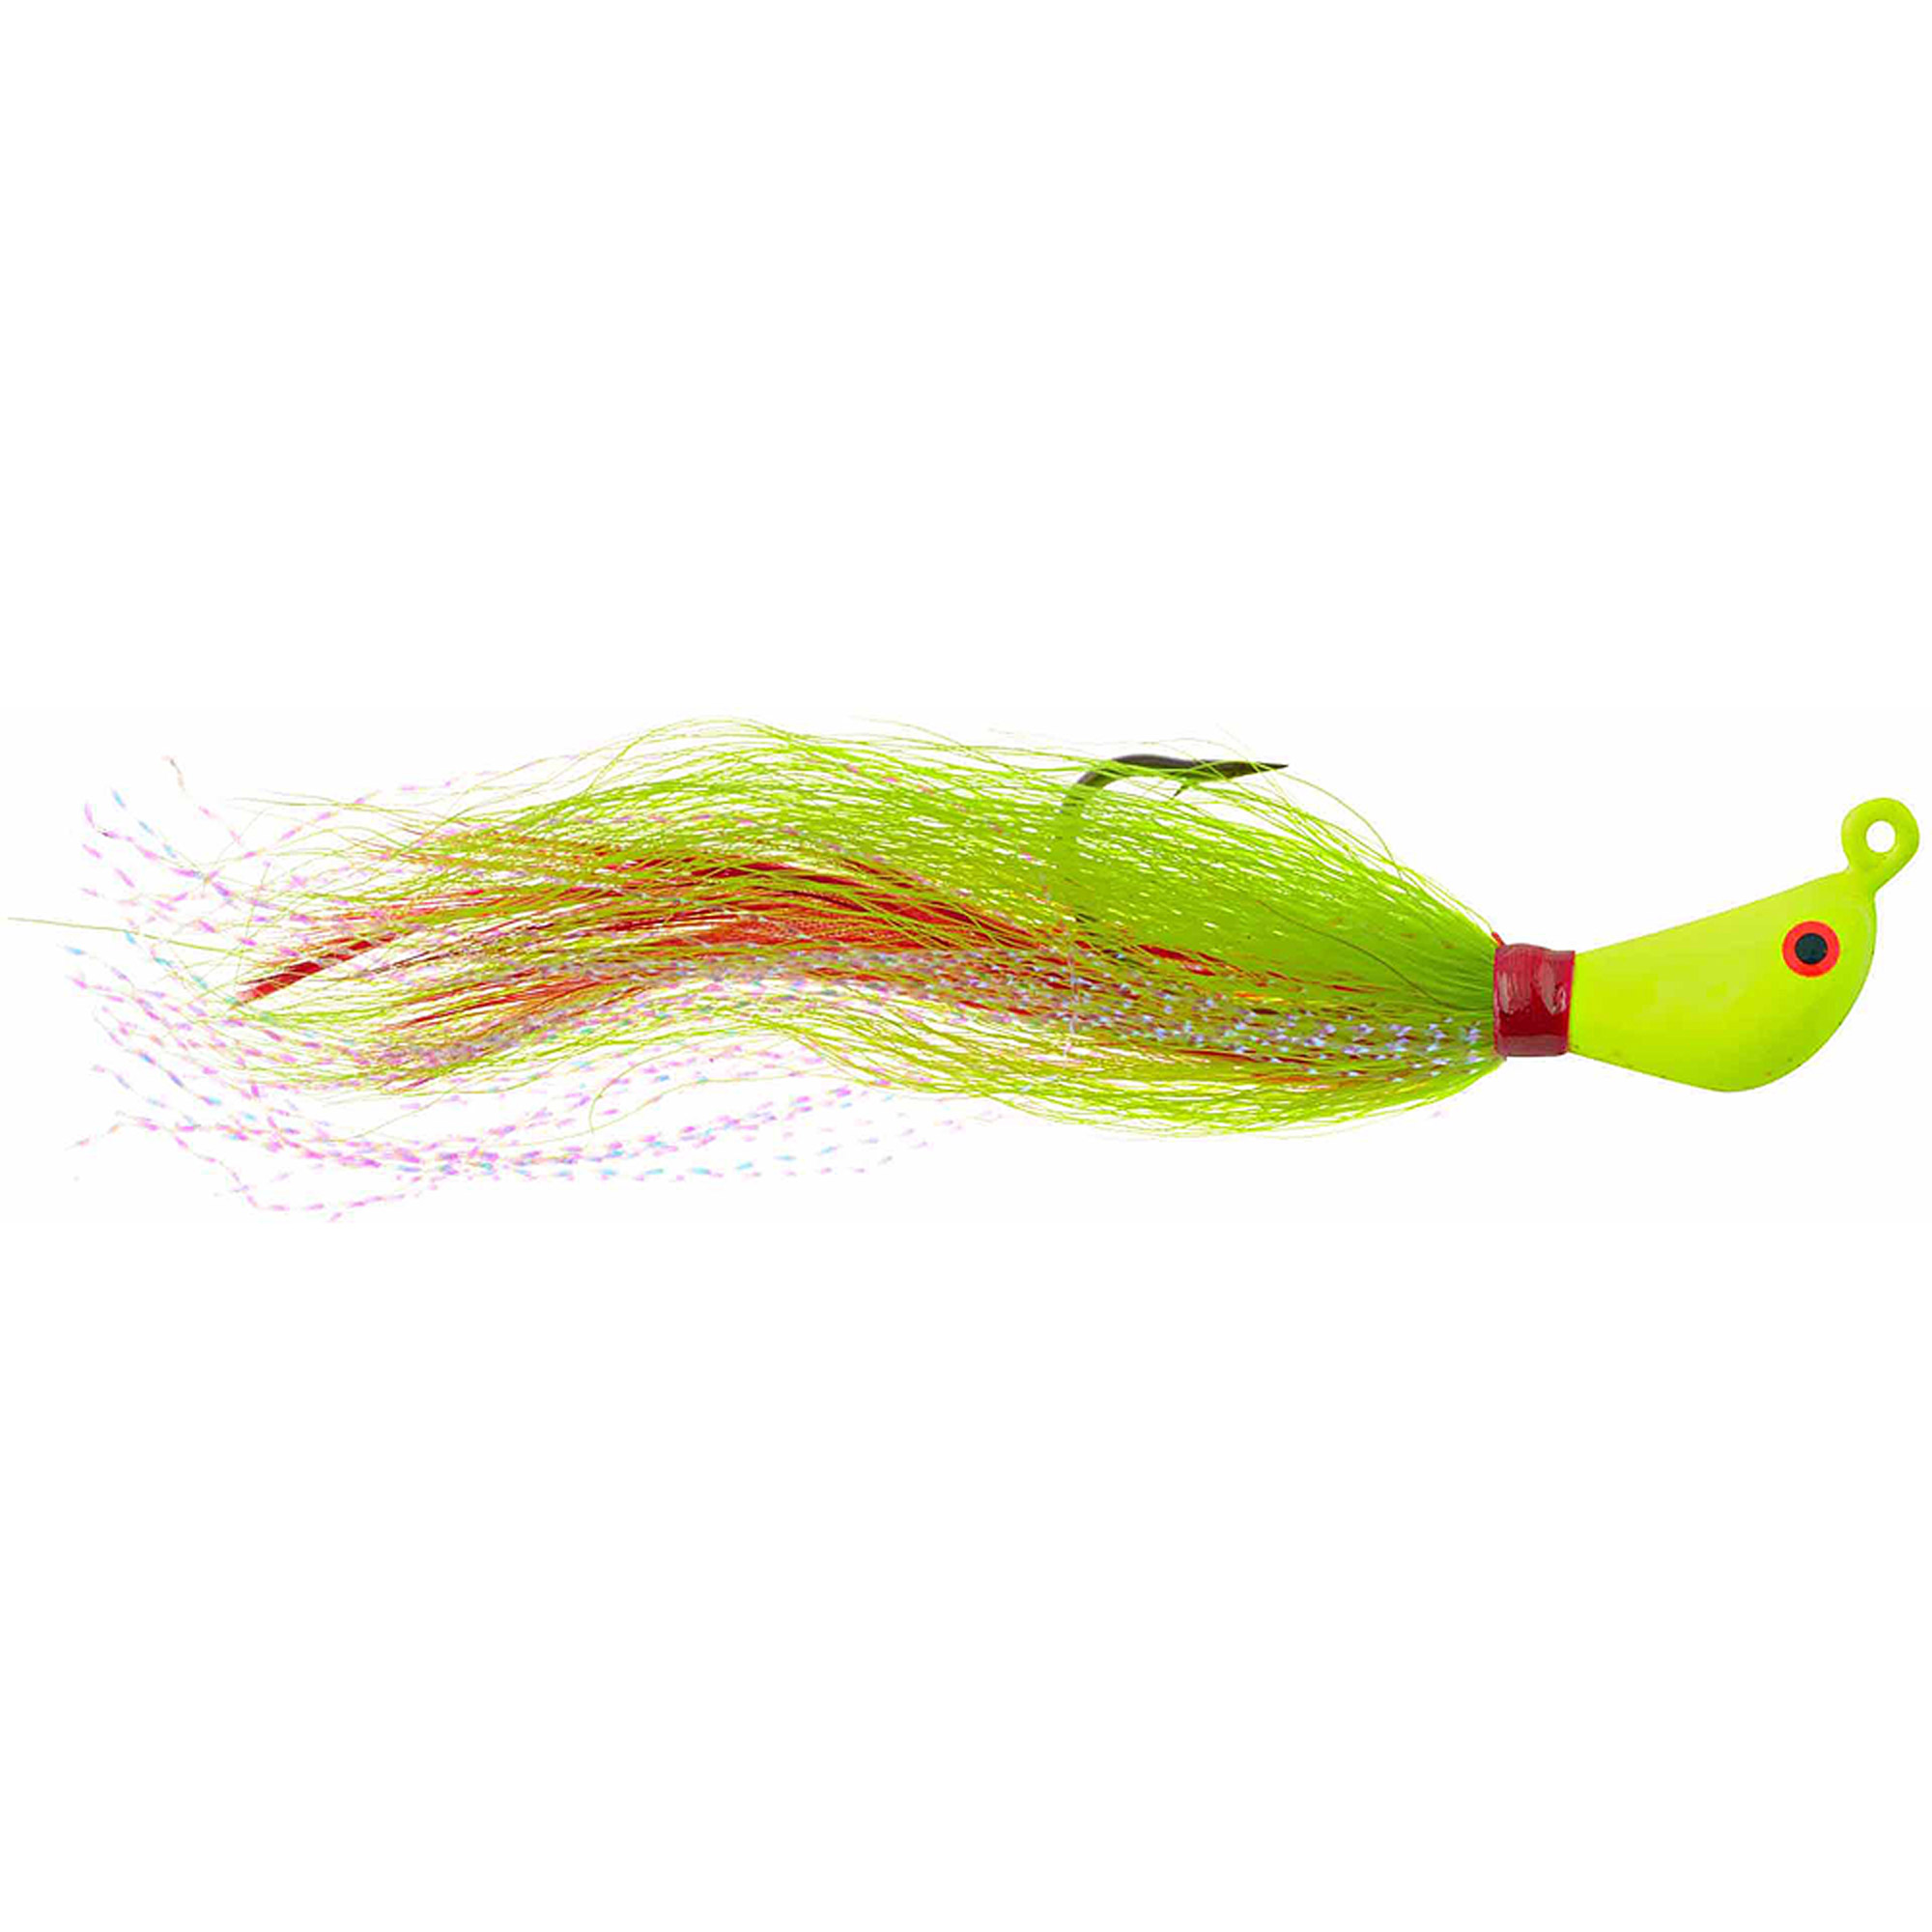 Hurricane Super Bucktails 1.5 oz by Hurricane